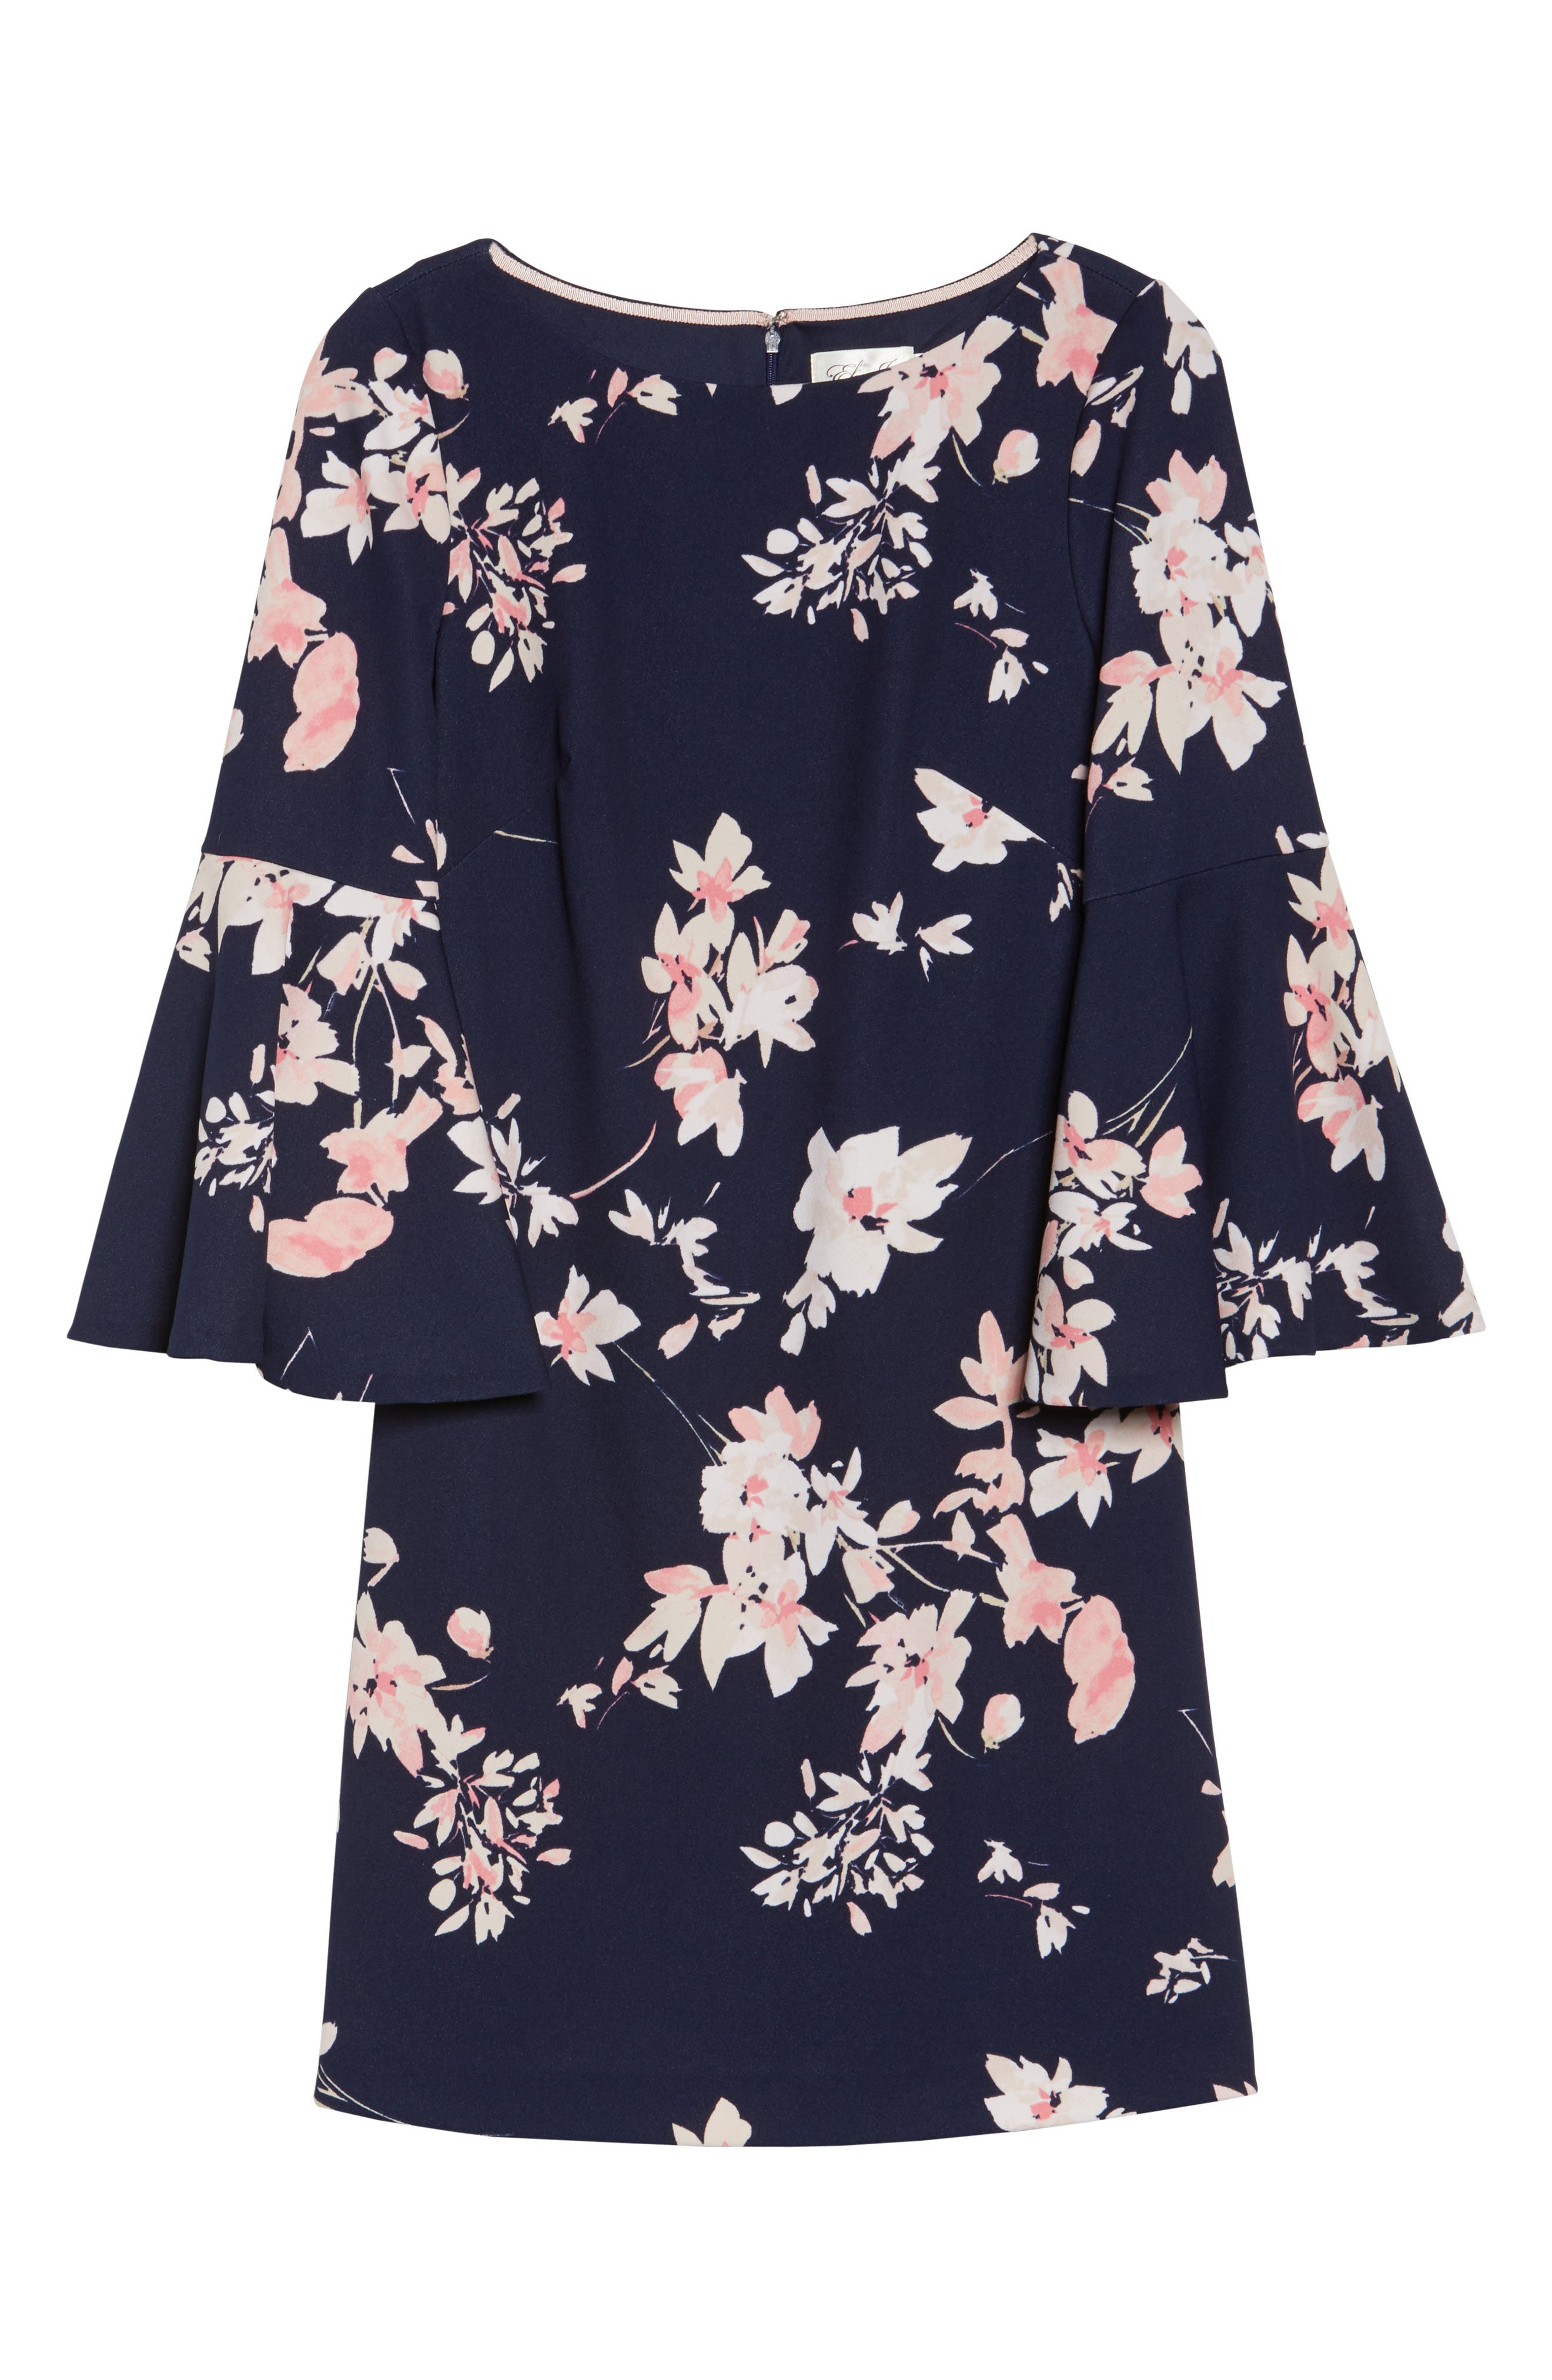 Floral Bell Sleeve Dress,                             Alternate thumbnail 6, color,                             Navy/ Pink